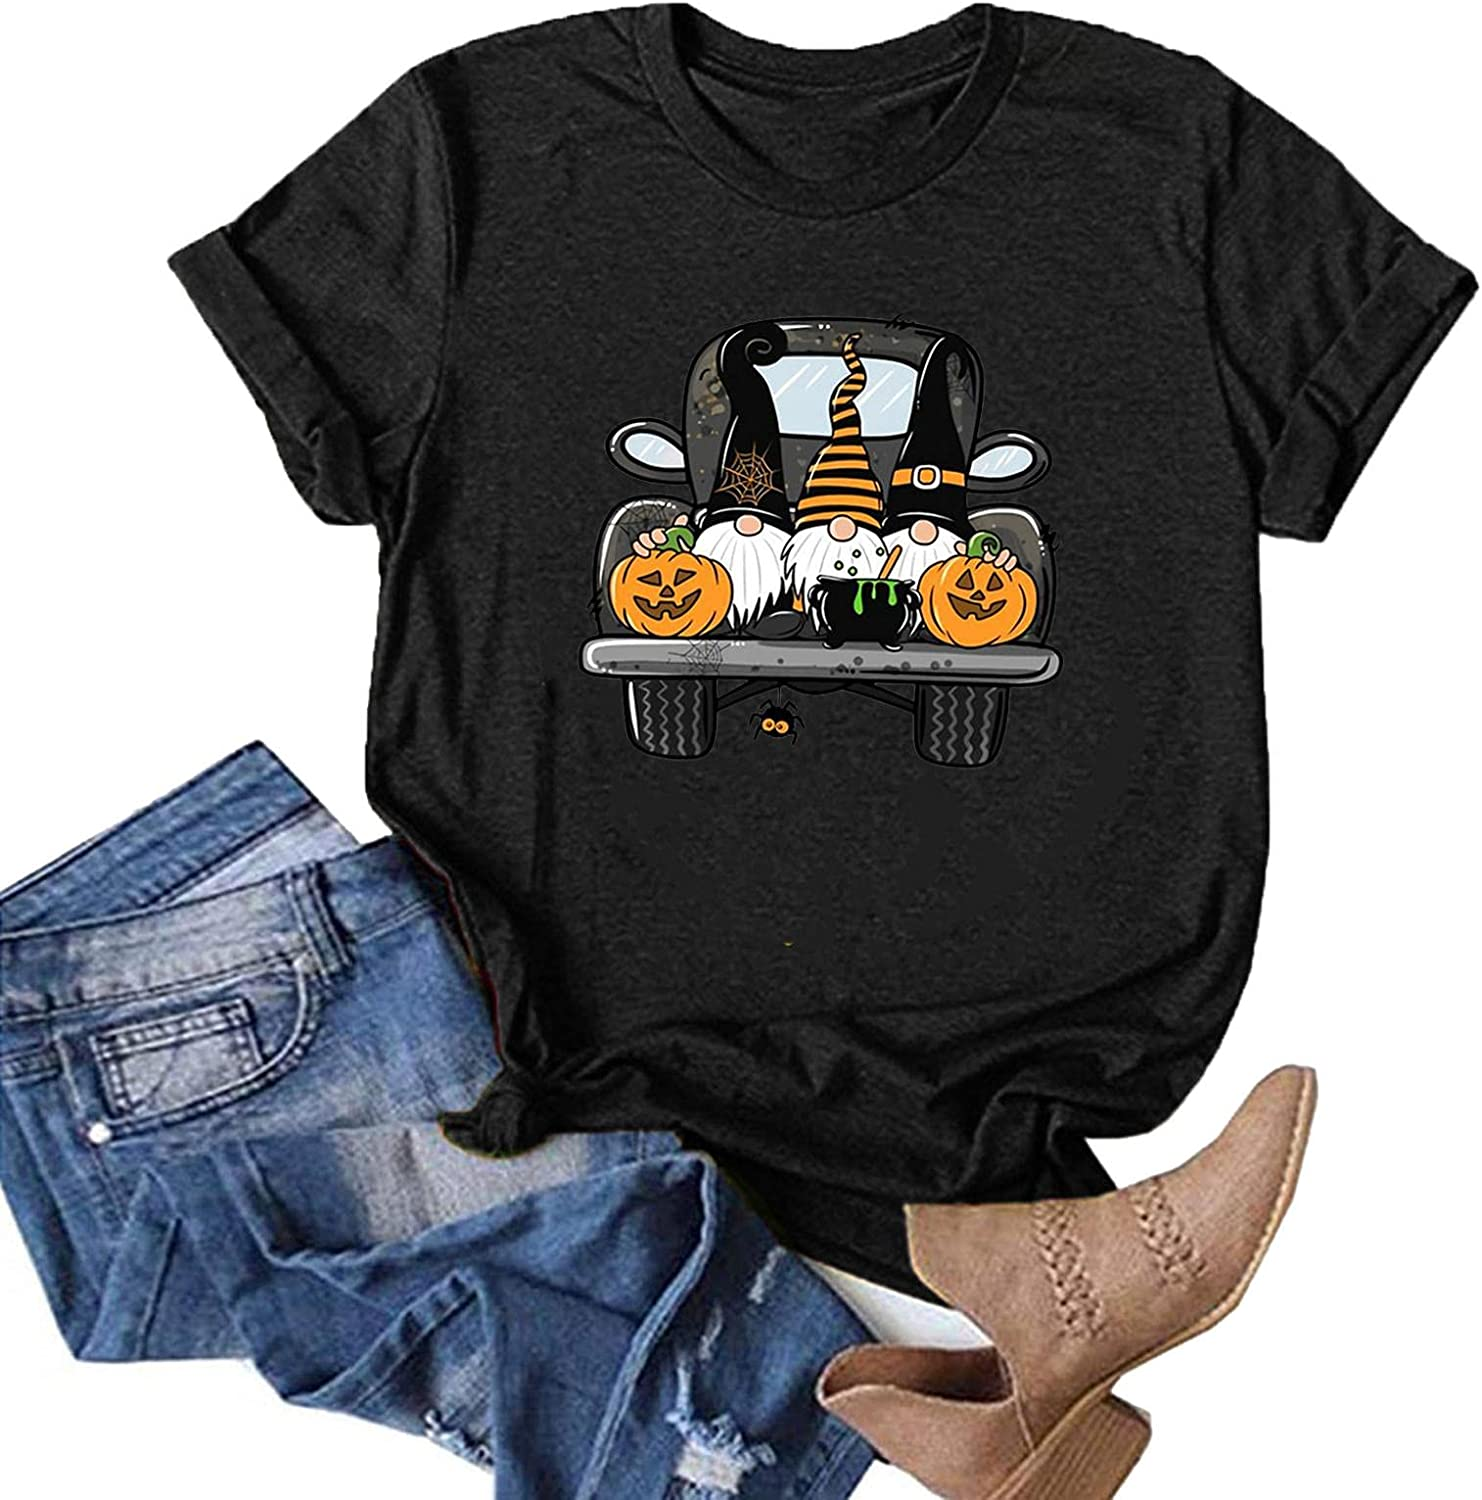 AODONG Womens Tops for Halloween Short Sleeves Gnomes Graphic T-Shirts Tee Tops Pullover Blouse Halloween